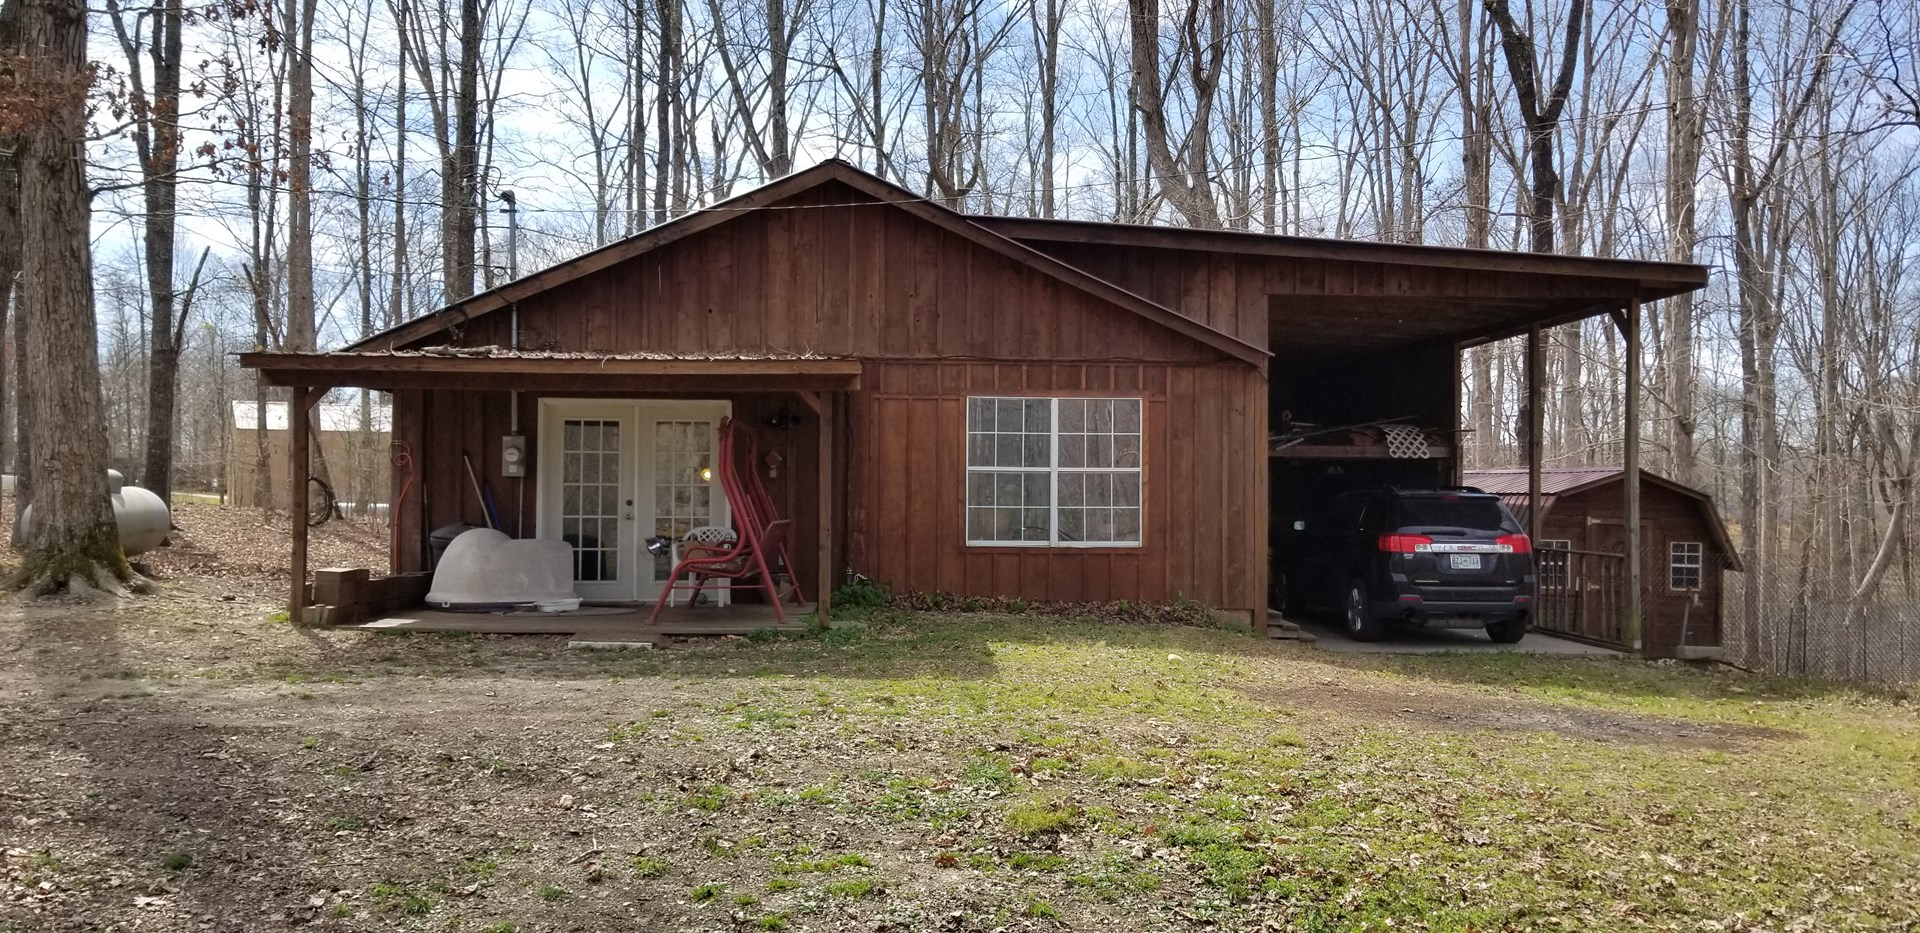 Perry County TN Cabin for Sale Near TN River